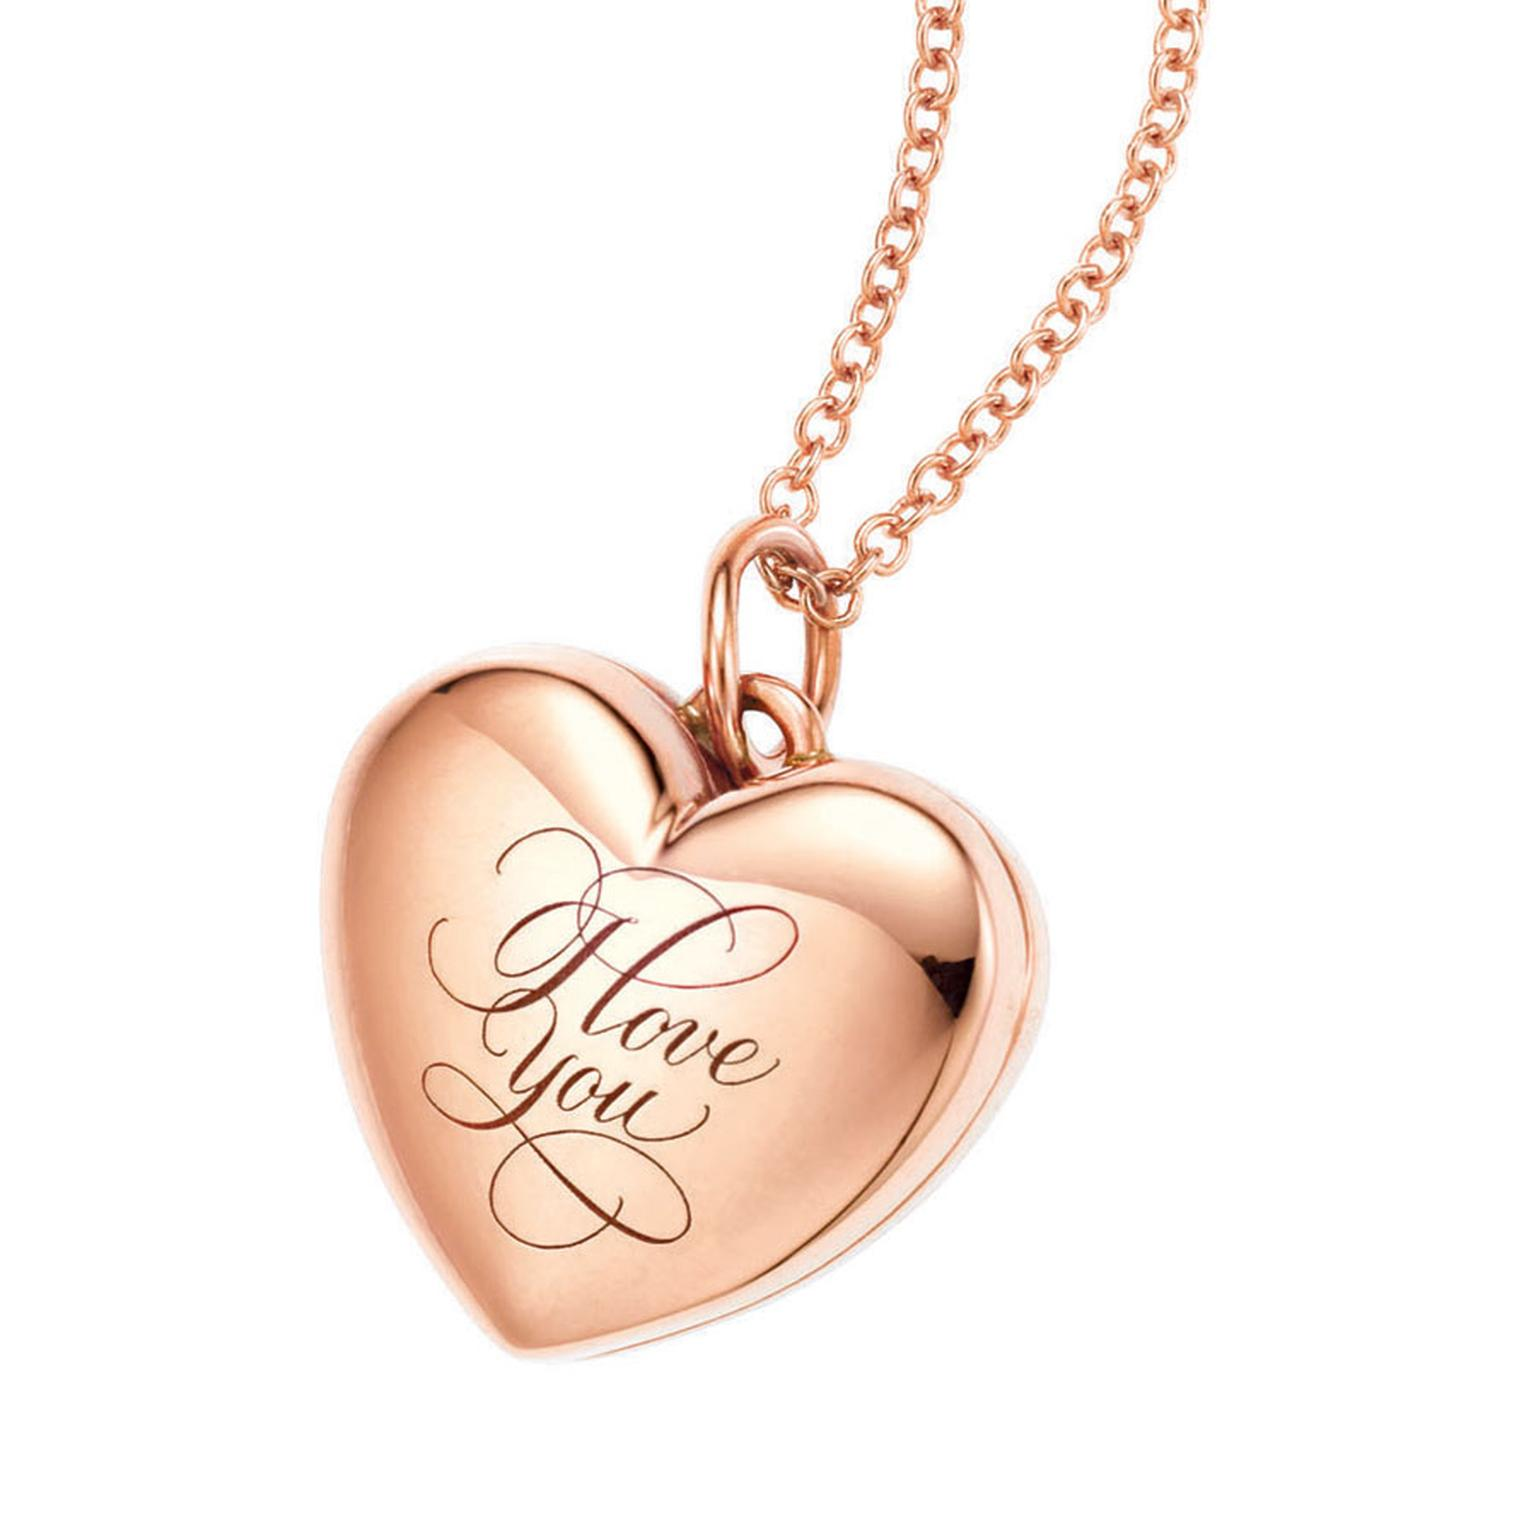 Tiffany I love you locket in rose gold 680GBP and the rose gold Chain 135GBP